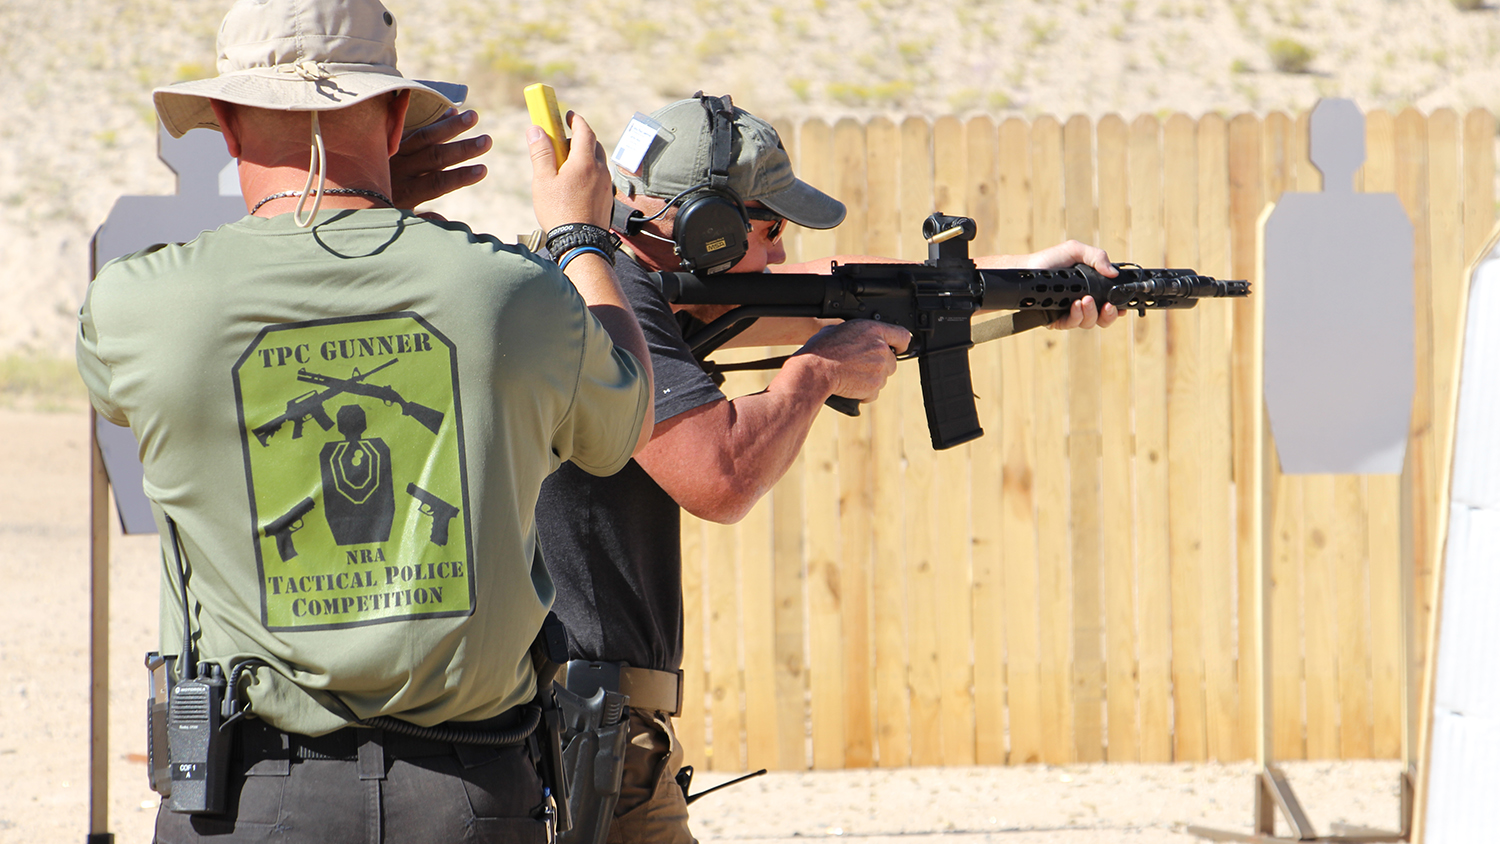 Officers Put Their Skills to the Test at Tactical Police Competition